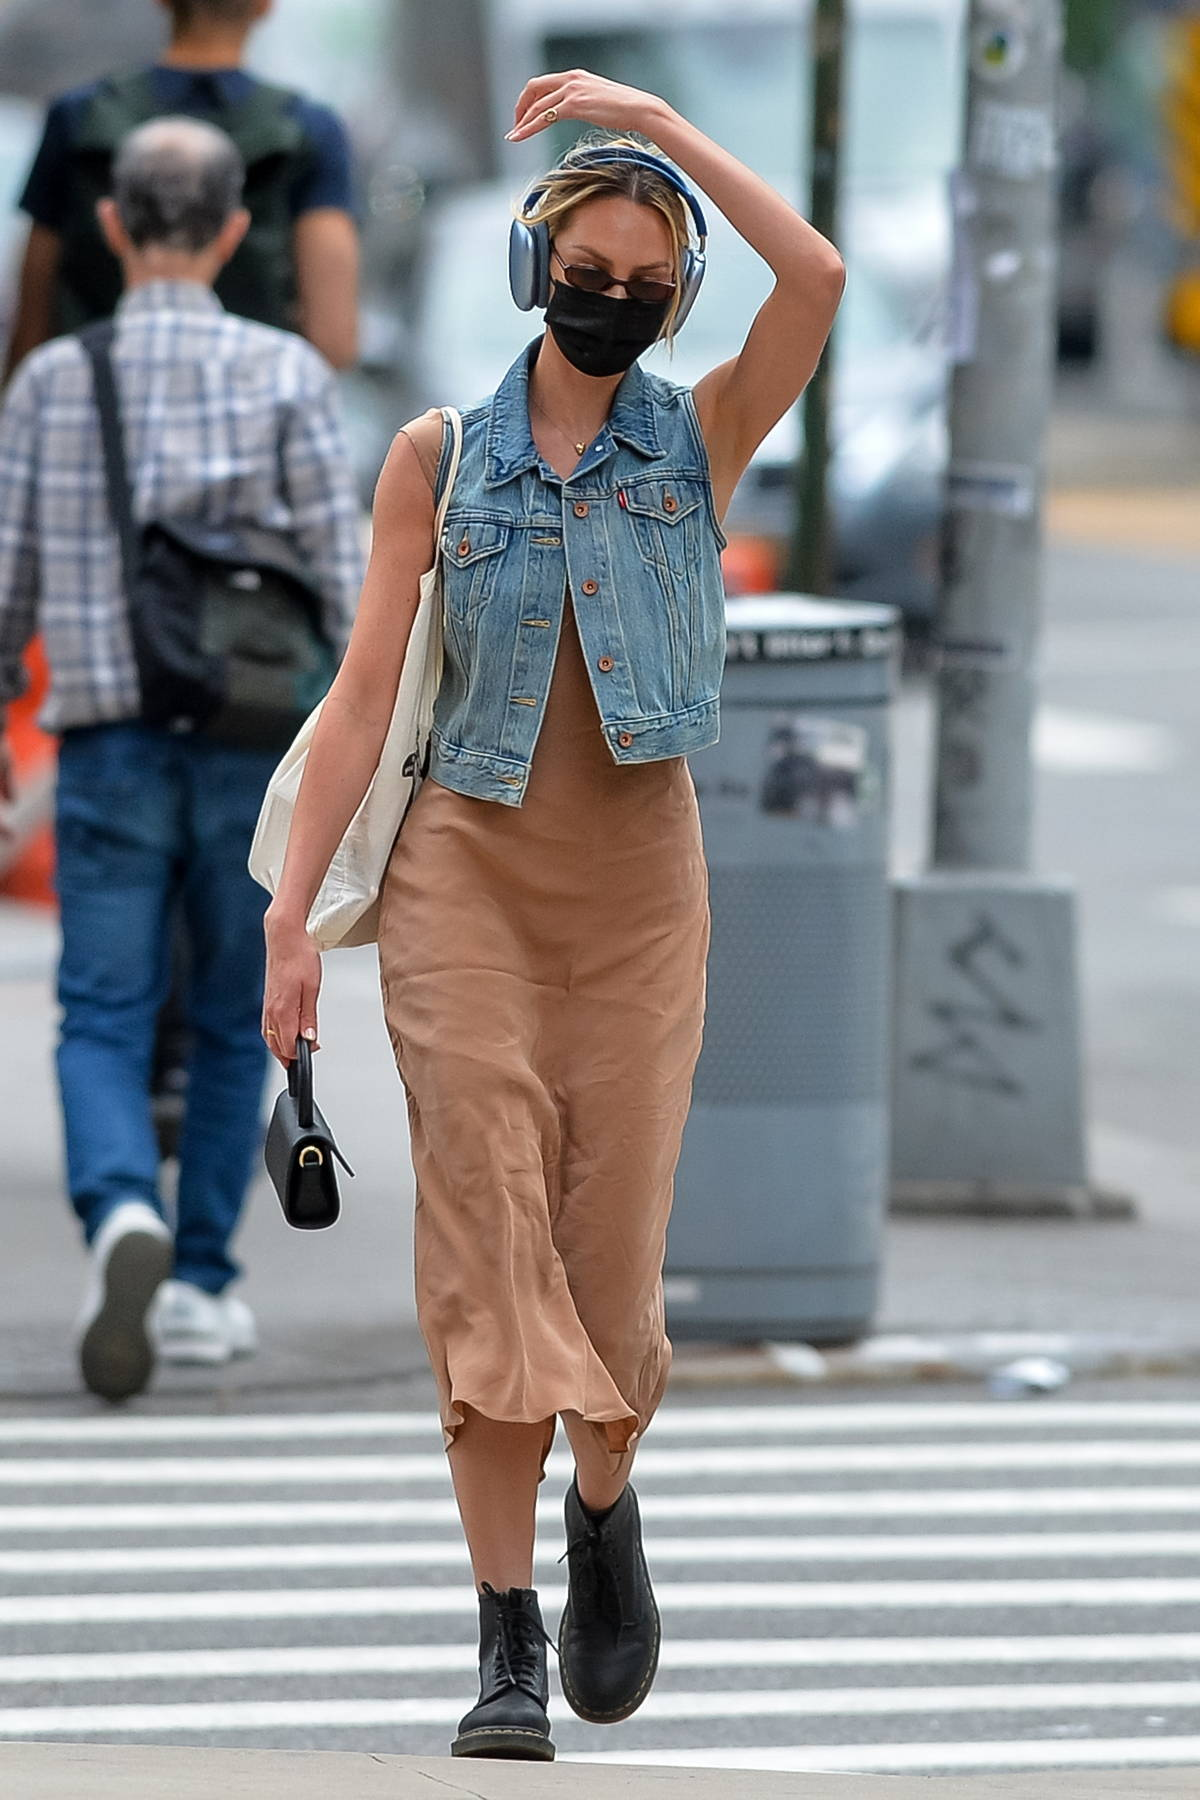 Candice Swanepoel dons a beige dress and blue denim vest with matching headphones while out in New York City